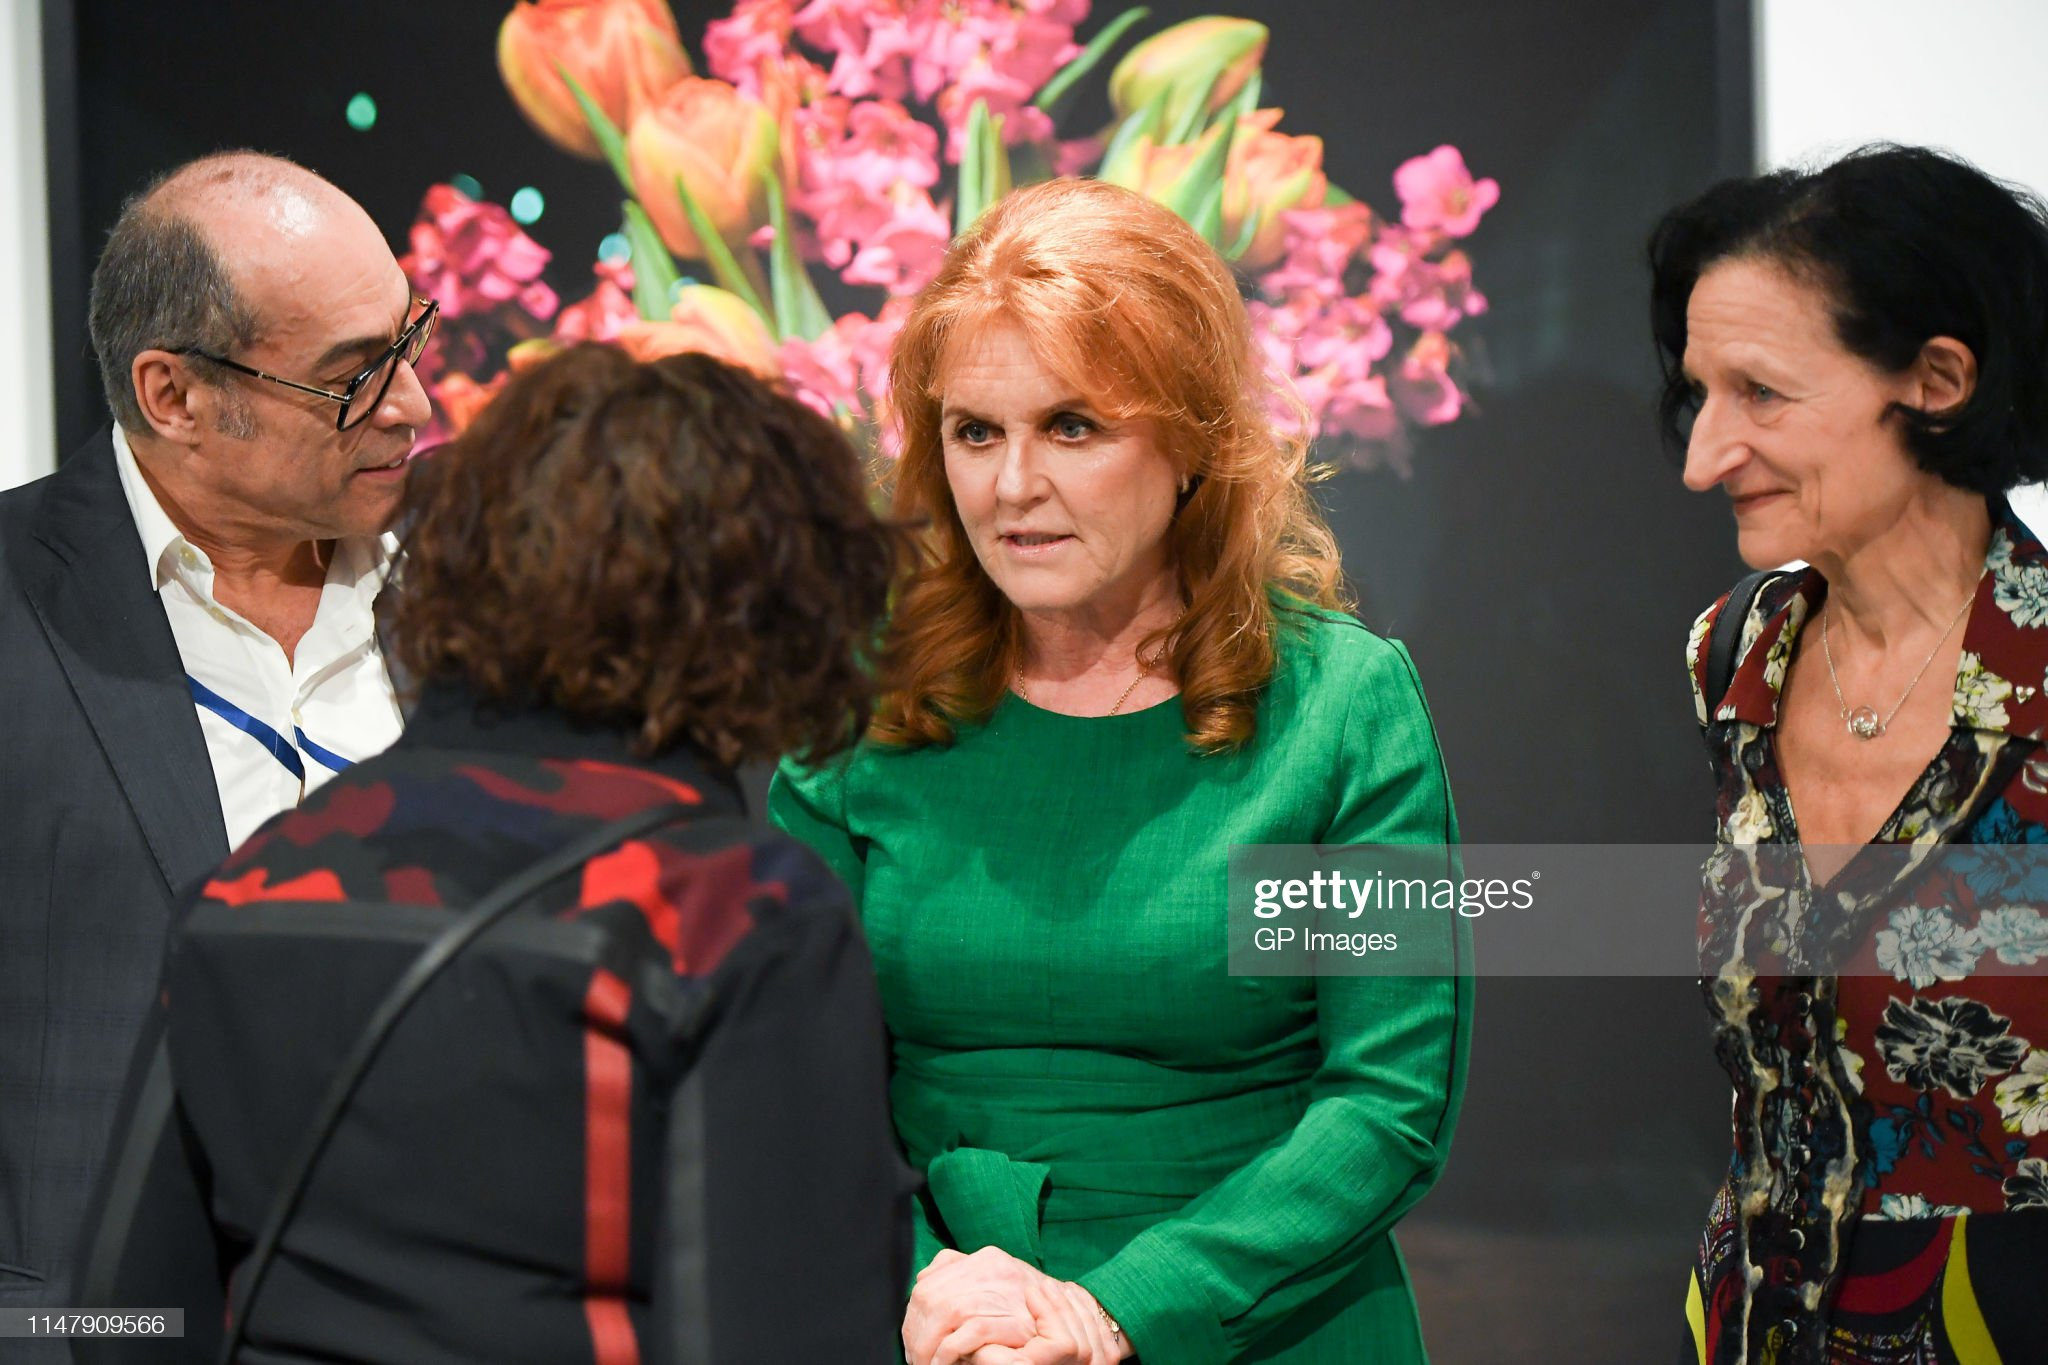 https://media.gettyimages.com/photos/curator-francisco-alvarez-duchess-of-york-sarah-ferguson-and-and-picture-id1147909566?s=2048x2048